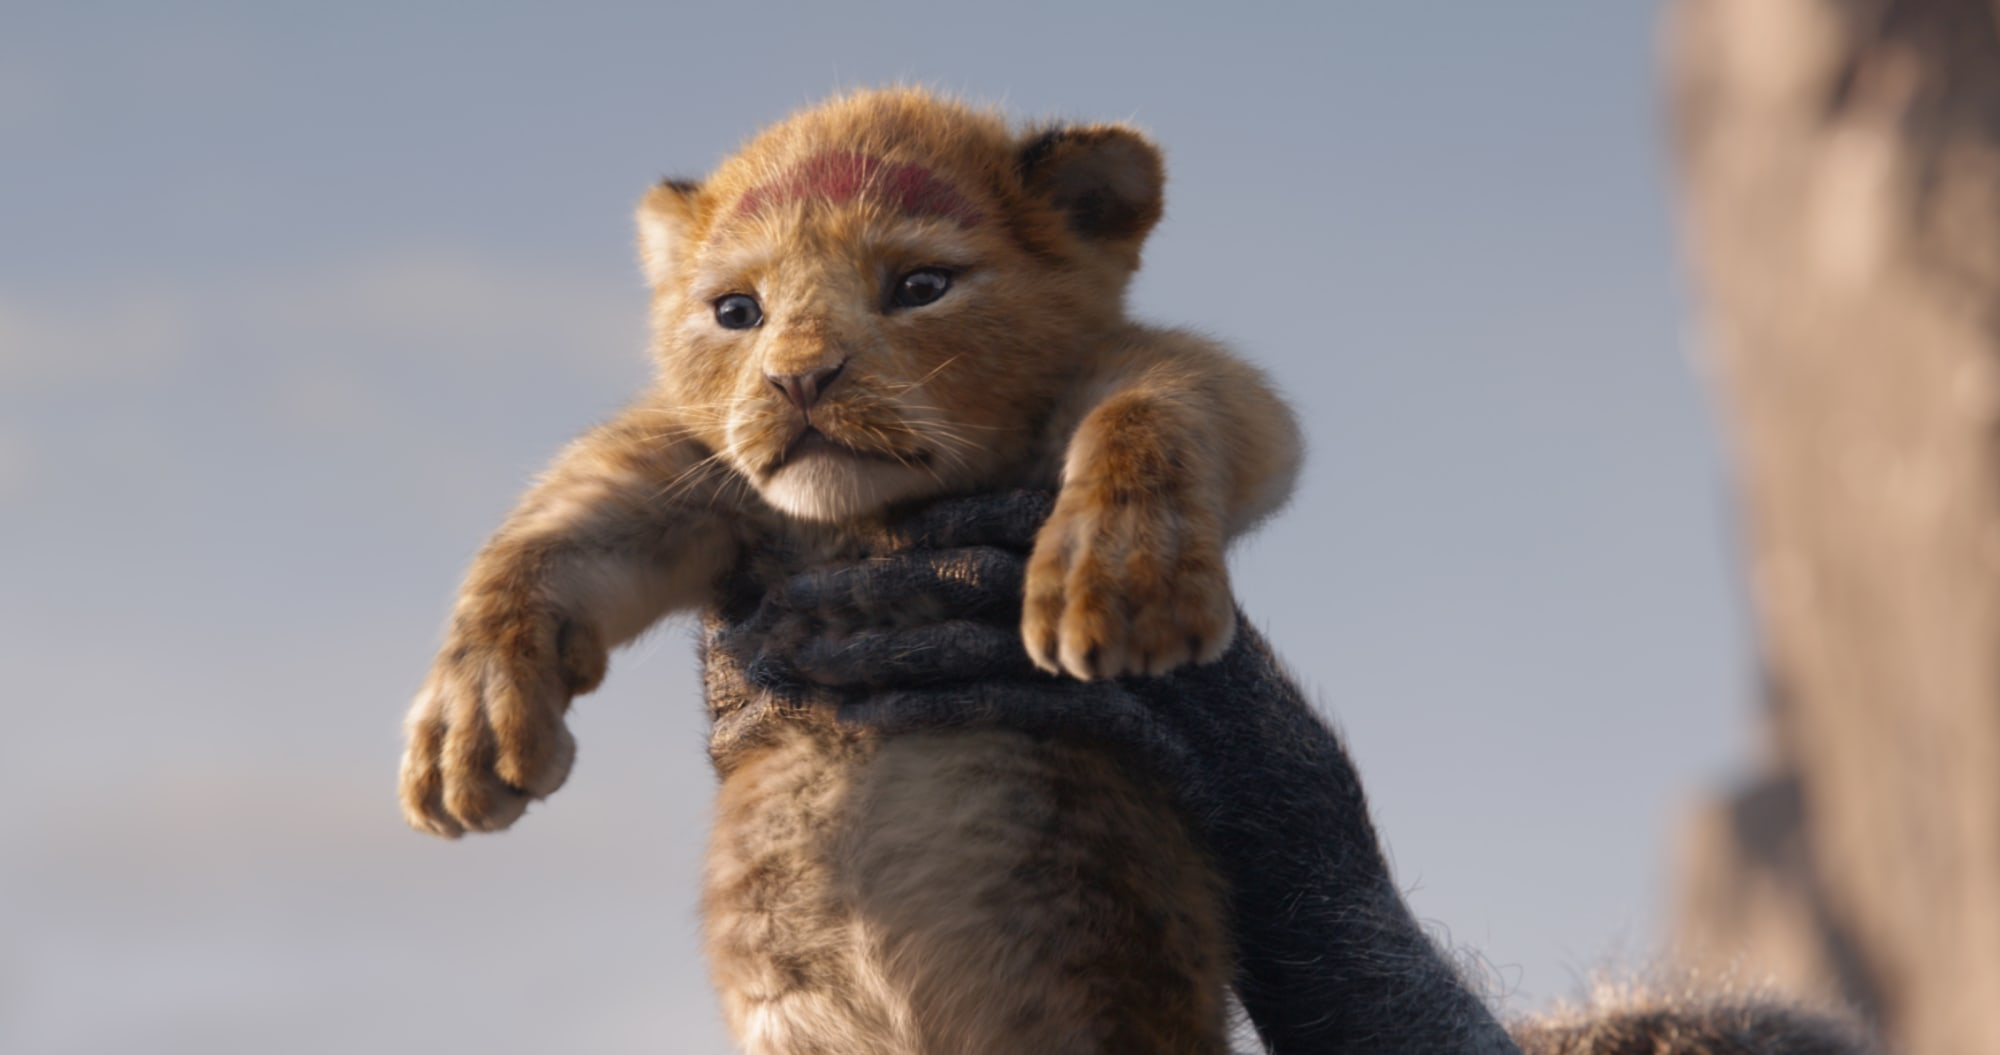 The Lion King remake is a poor version of the original movie